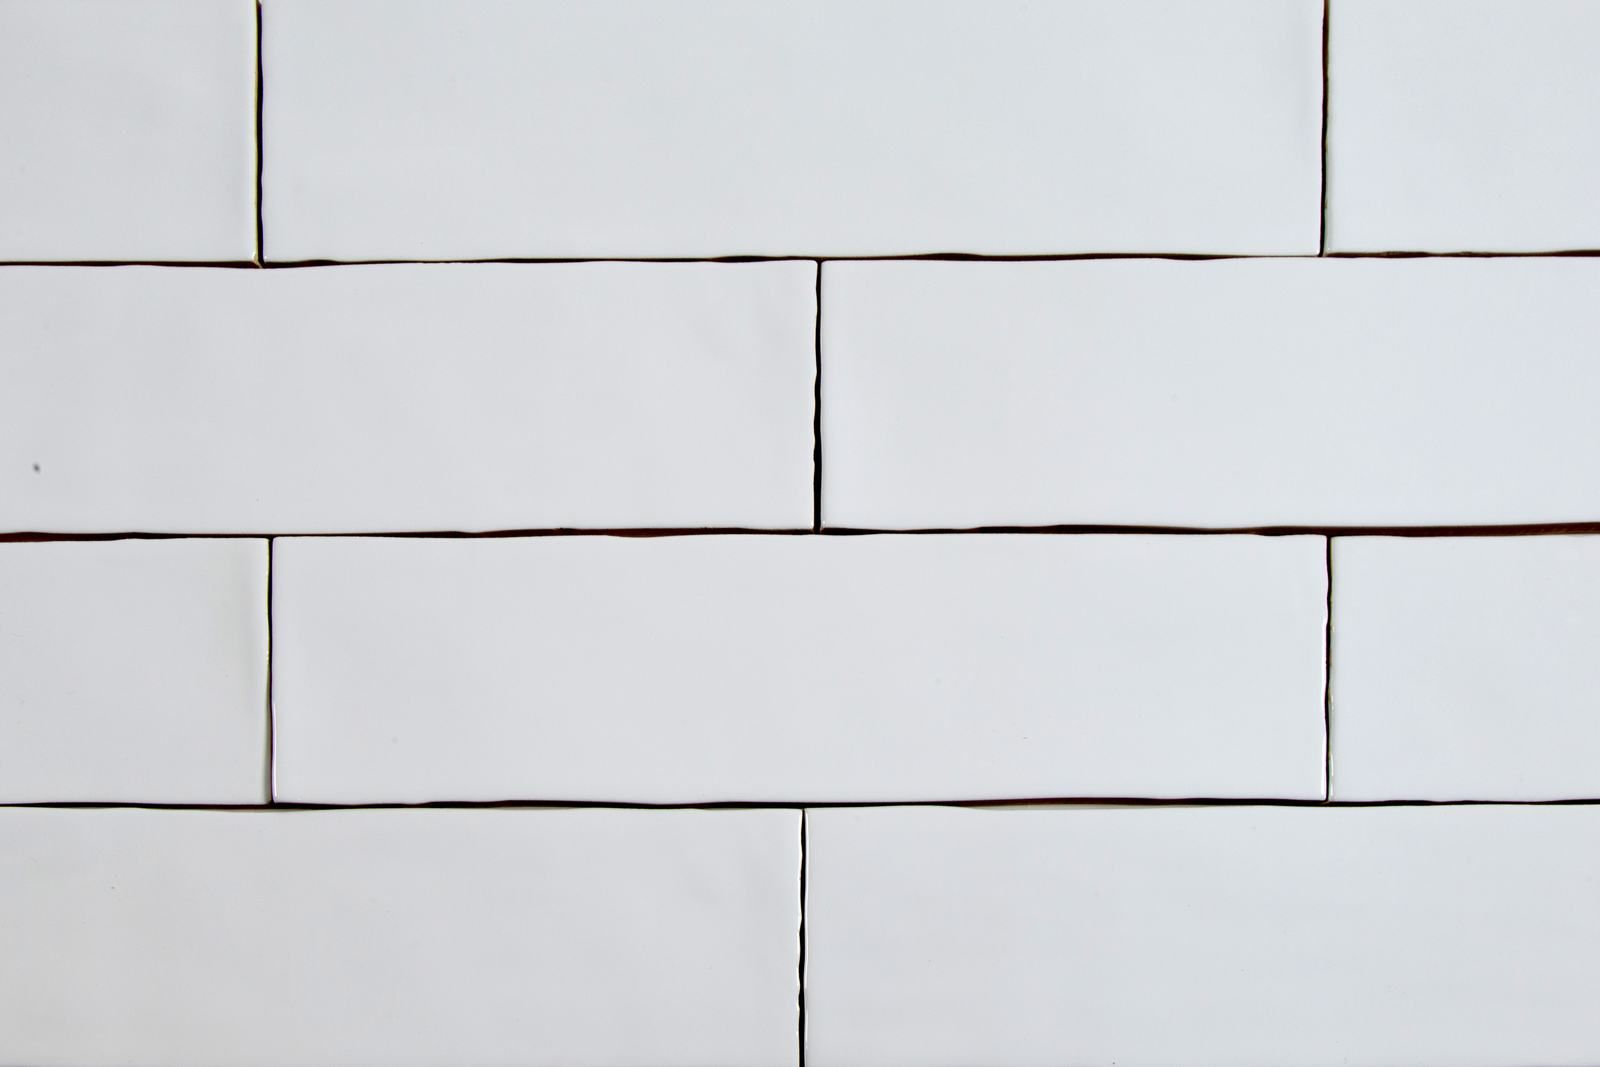 Lusso 3 X 12 Bianco Handmade Look Polished Subway Tile Storka Subway Tile Handmade Tile Backsplash Ceramic Subway Tile